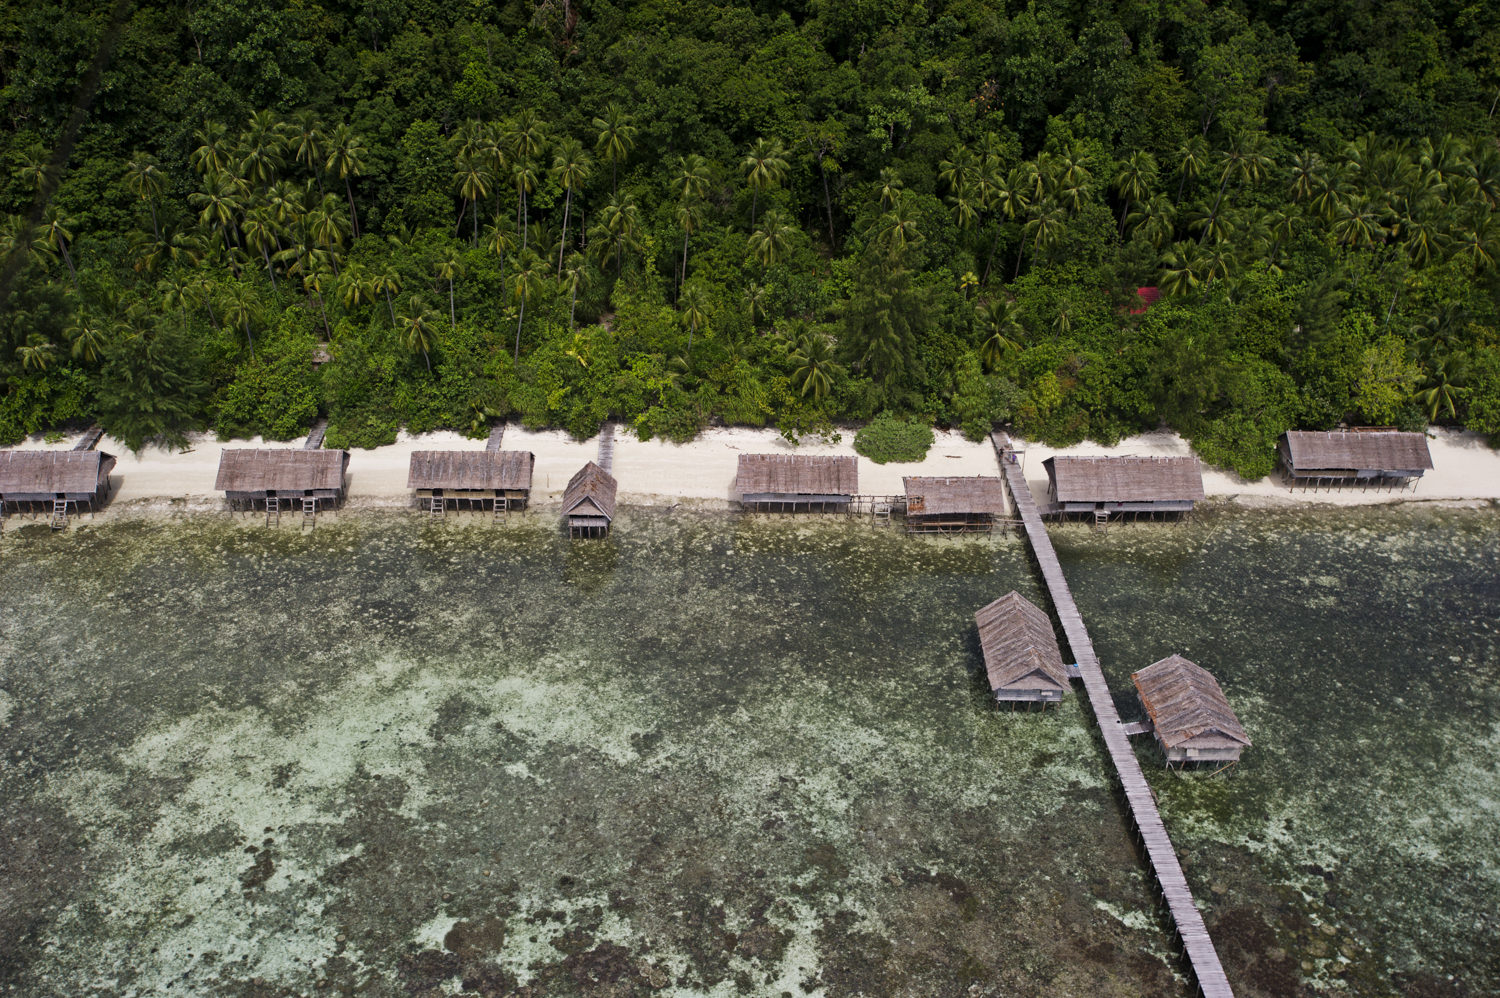 Kri Eco Resort - one of the first land based resorts in Raja Ampat